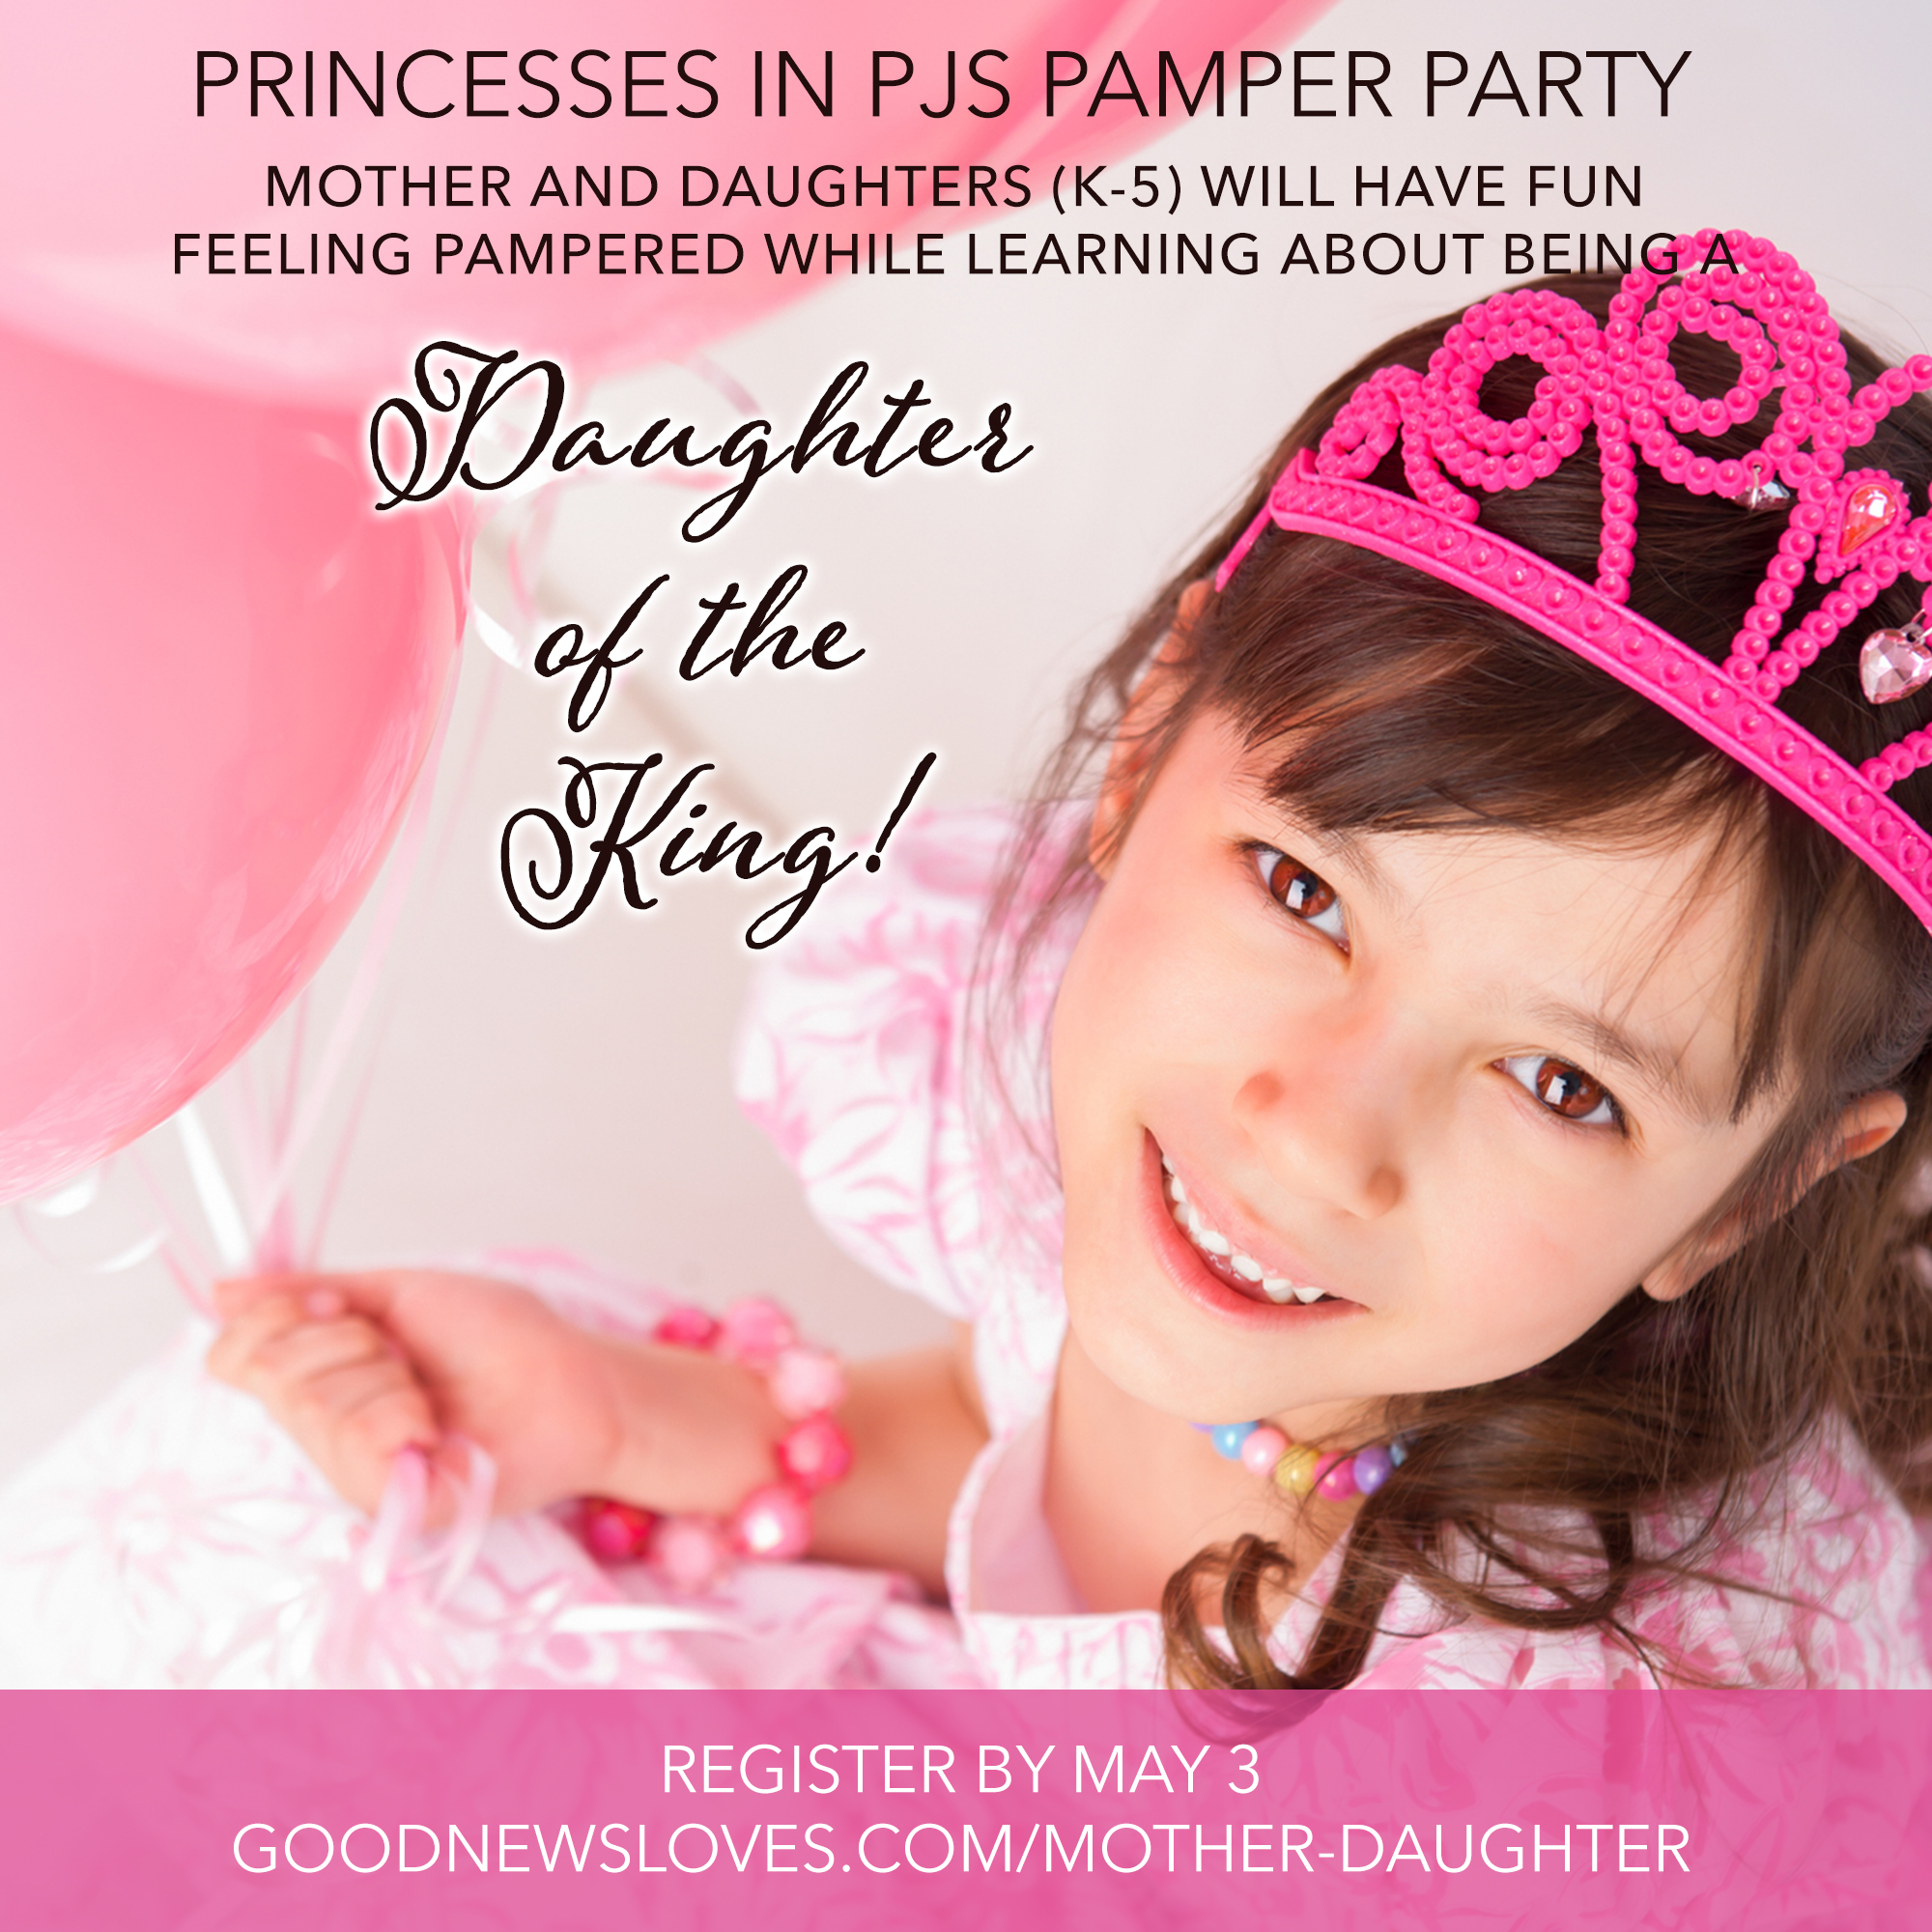 Mother-Daughter Princess in PJs Pamper Party - Friday, May 10, 6-8p @Wildwood campusfor Wildwood & World Golf Village campuses